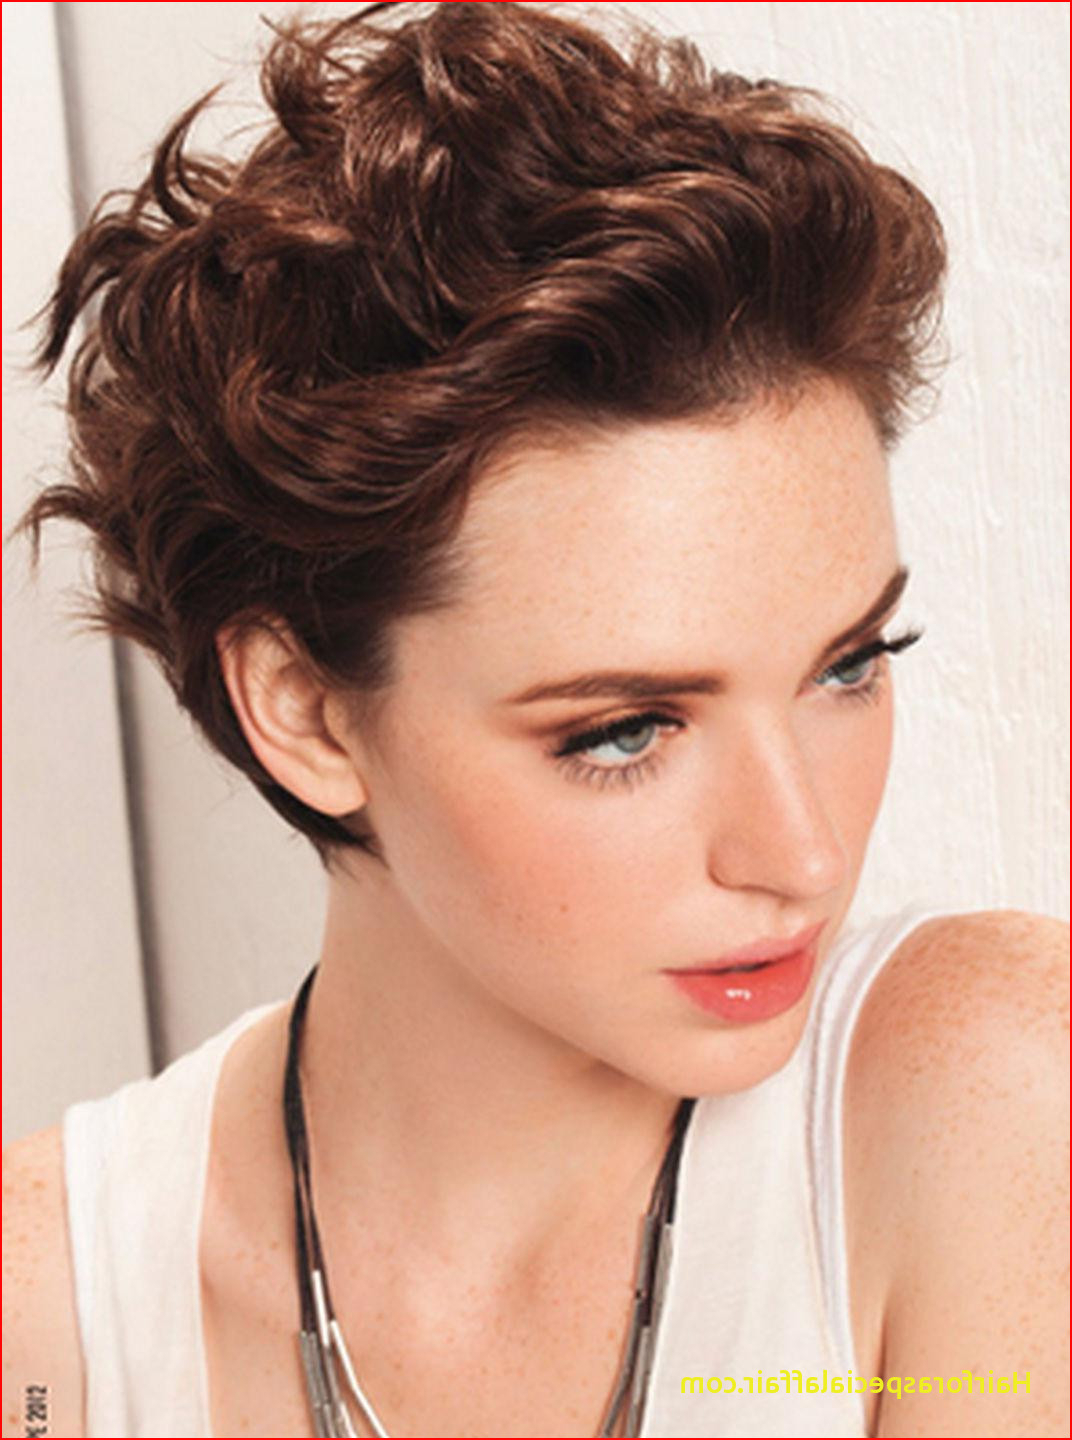 Short Haircuts For Women With Thick Wavy Hair Cute Short Haircuts Intended For Short Hairstyles For Very Thick Hair (View 20 of 25)